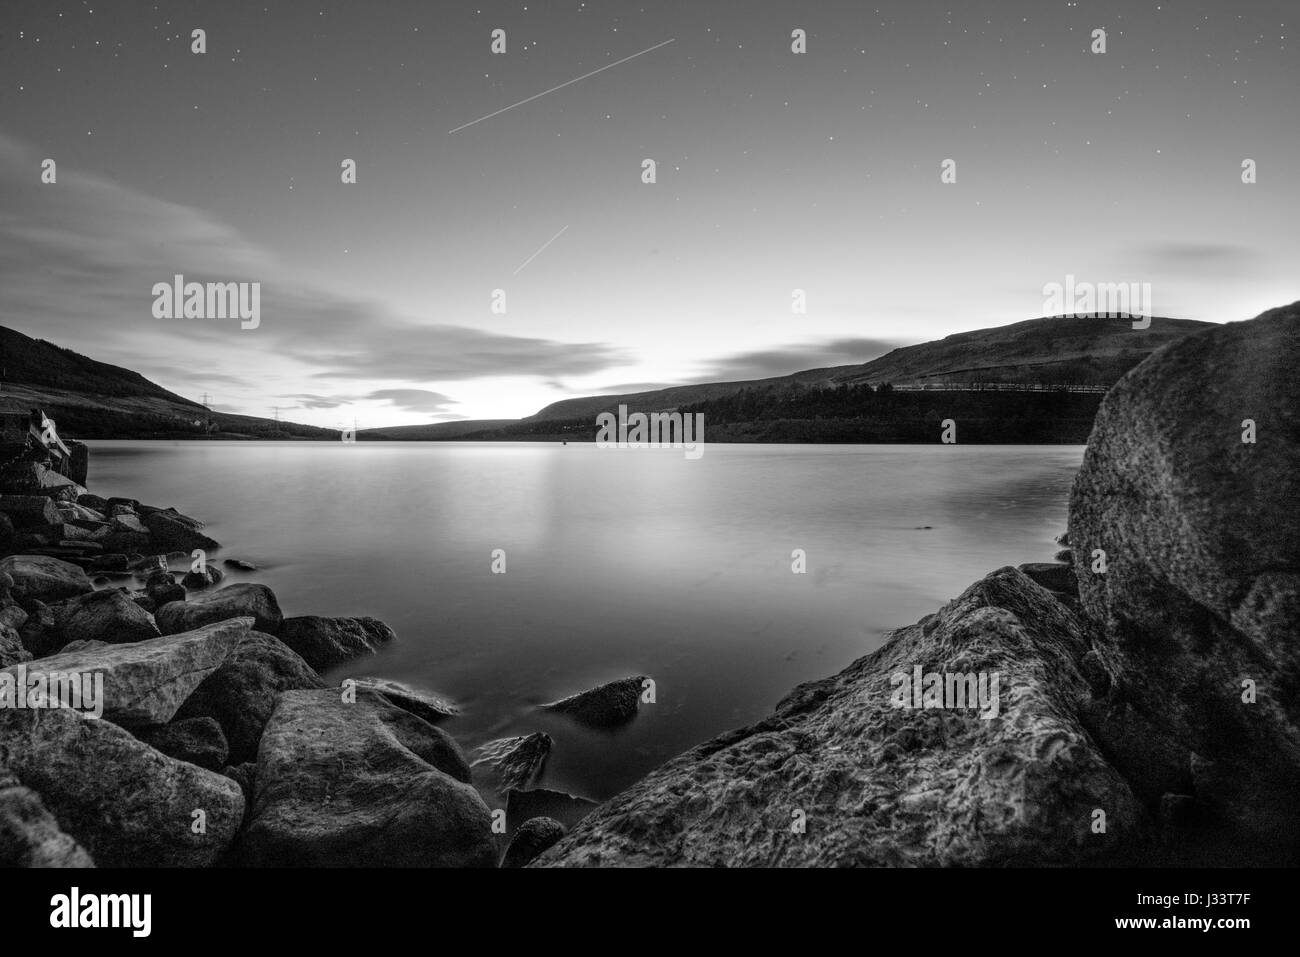 Night time lake. Long Exposure with stars. - Stock Image